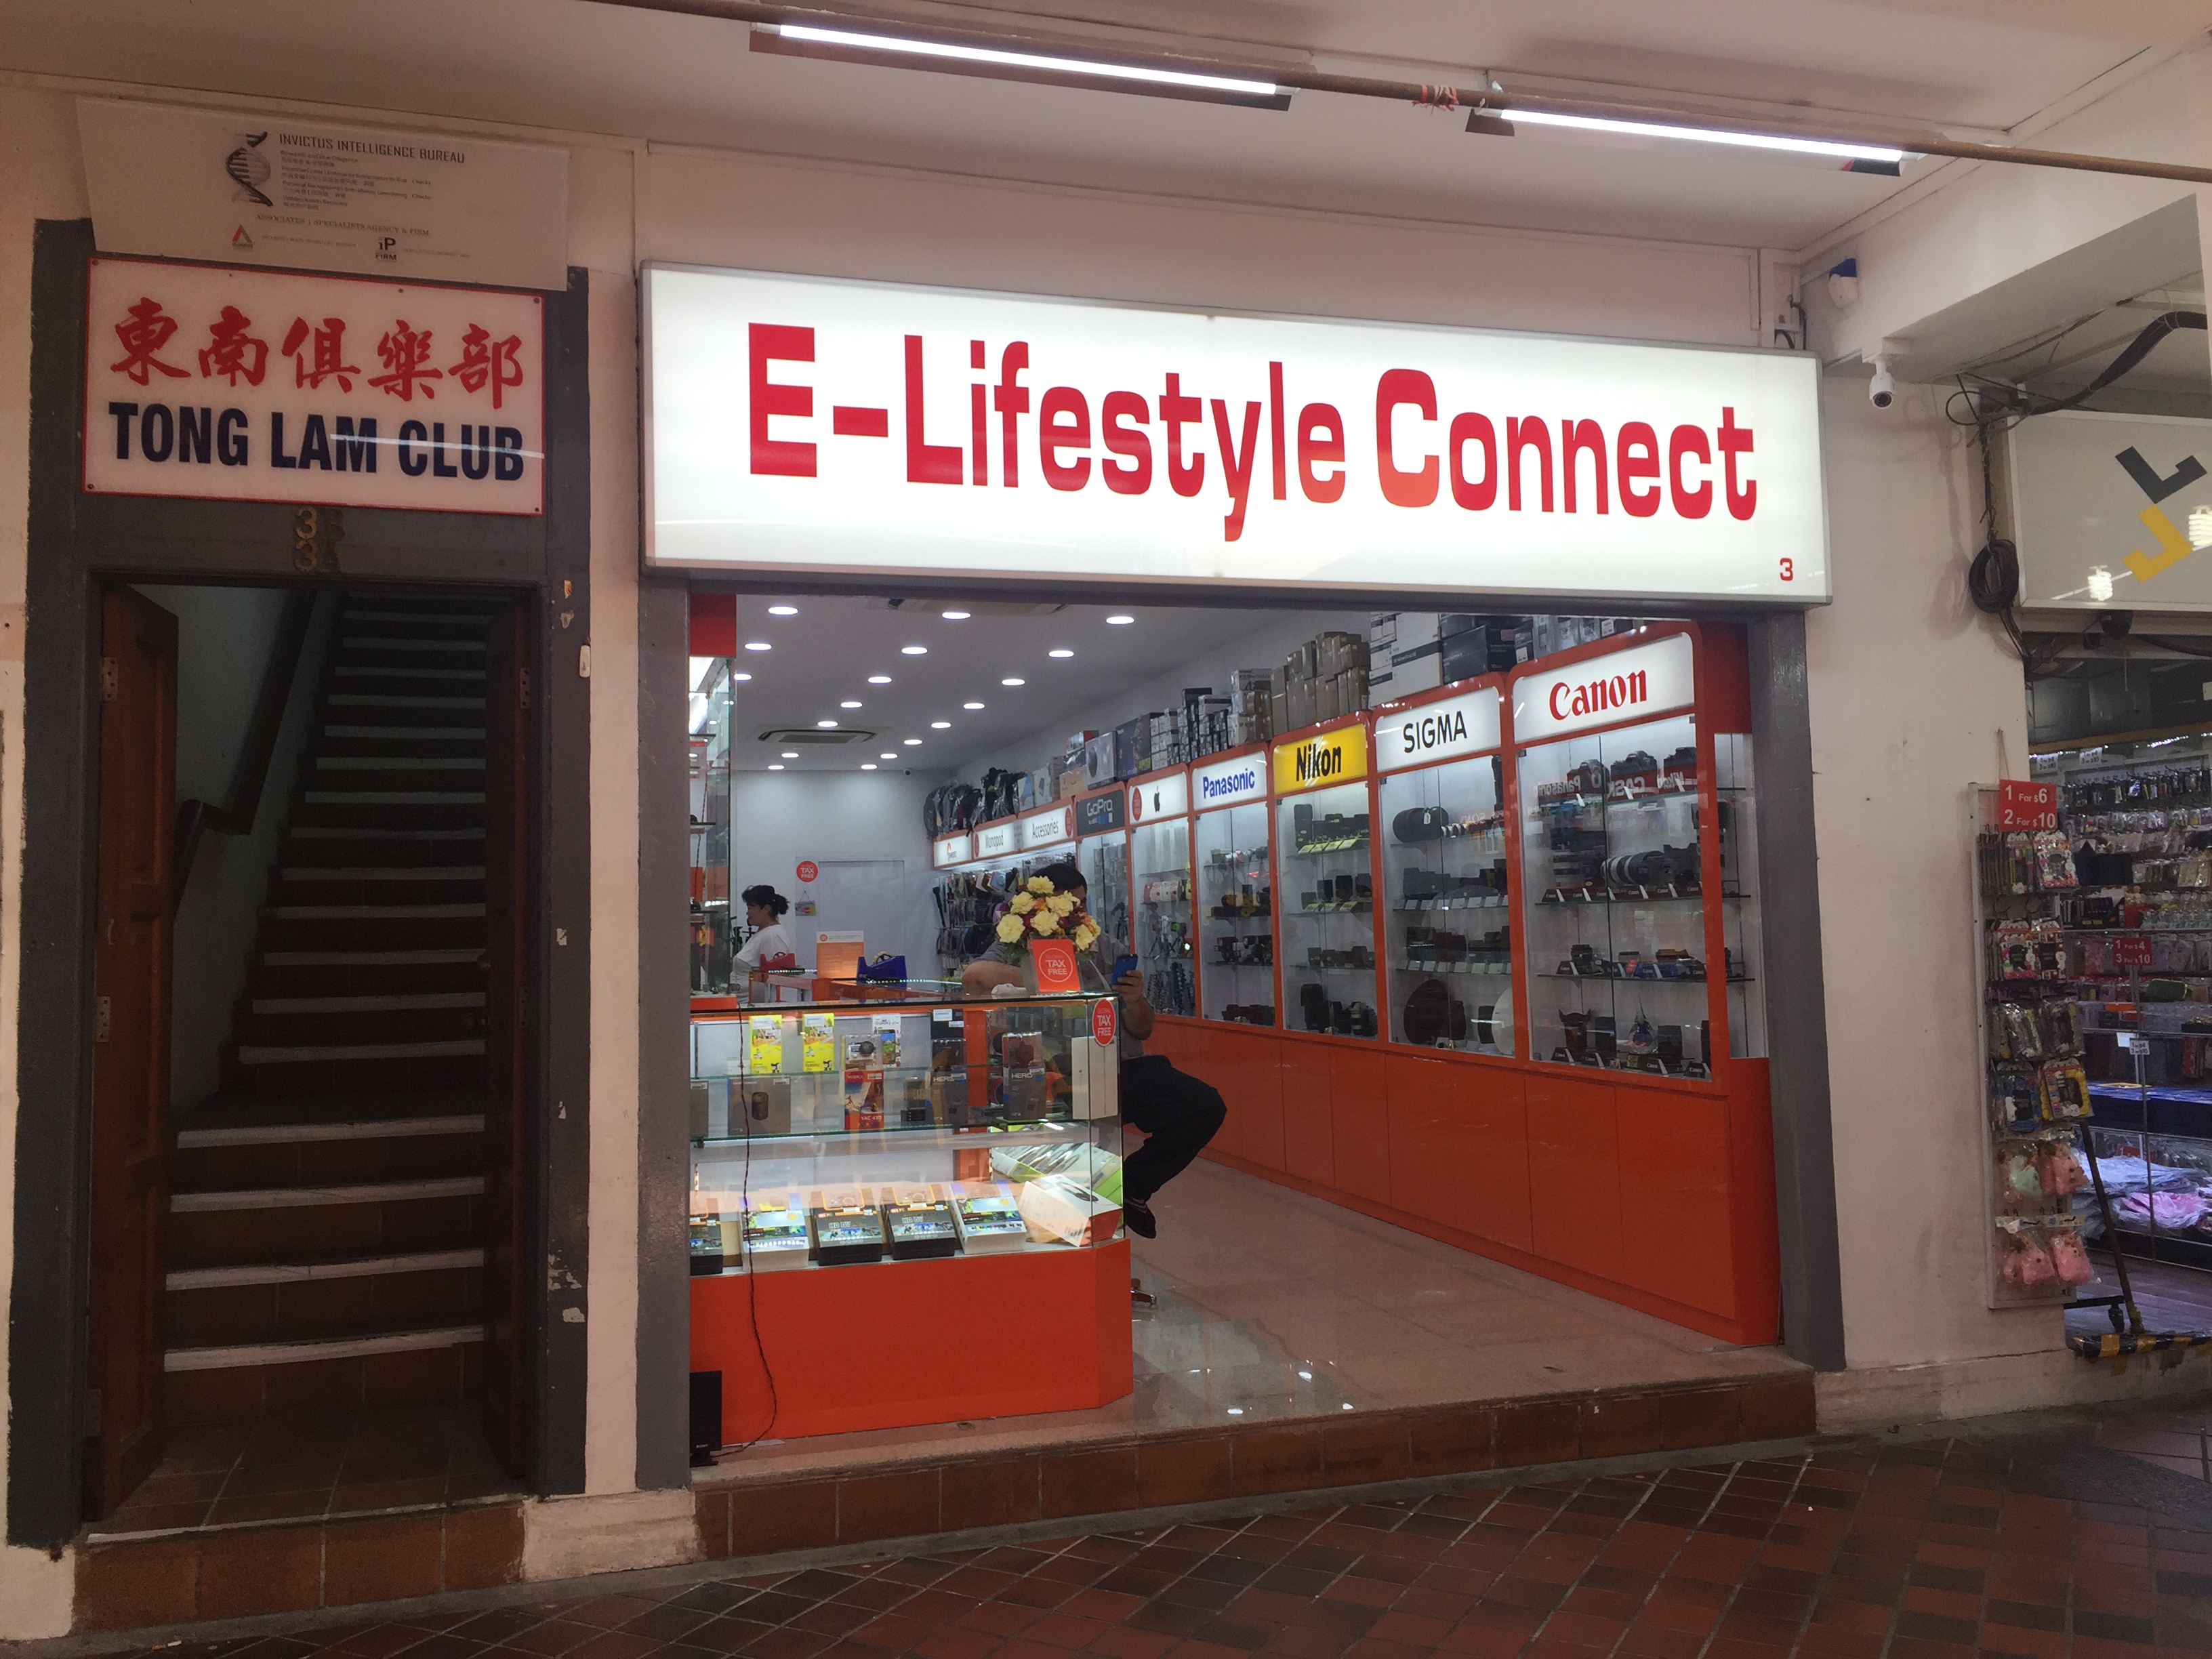 E-Lifestyle Connect (China Town)